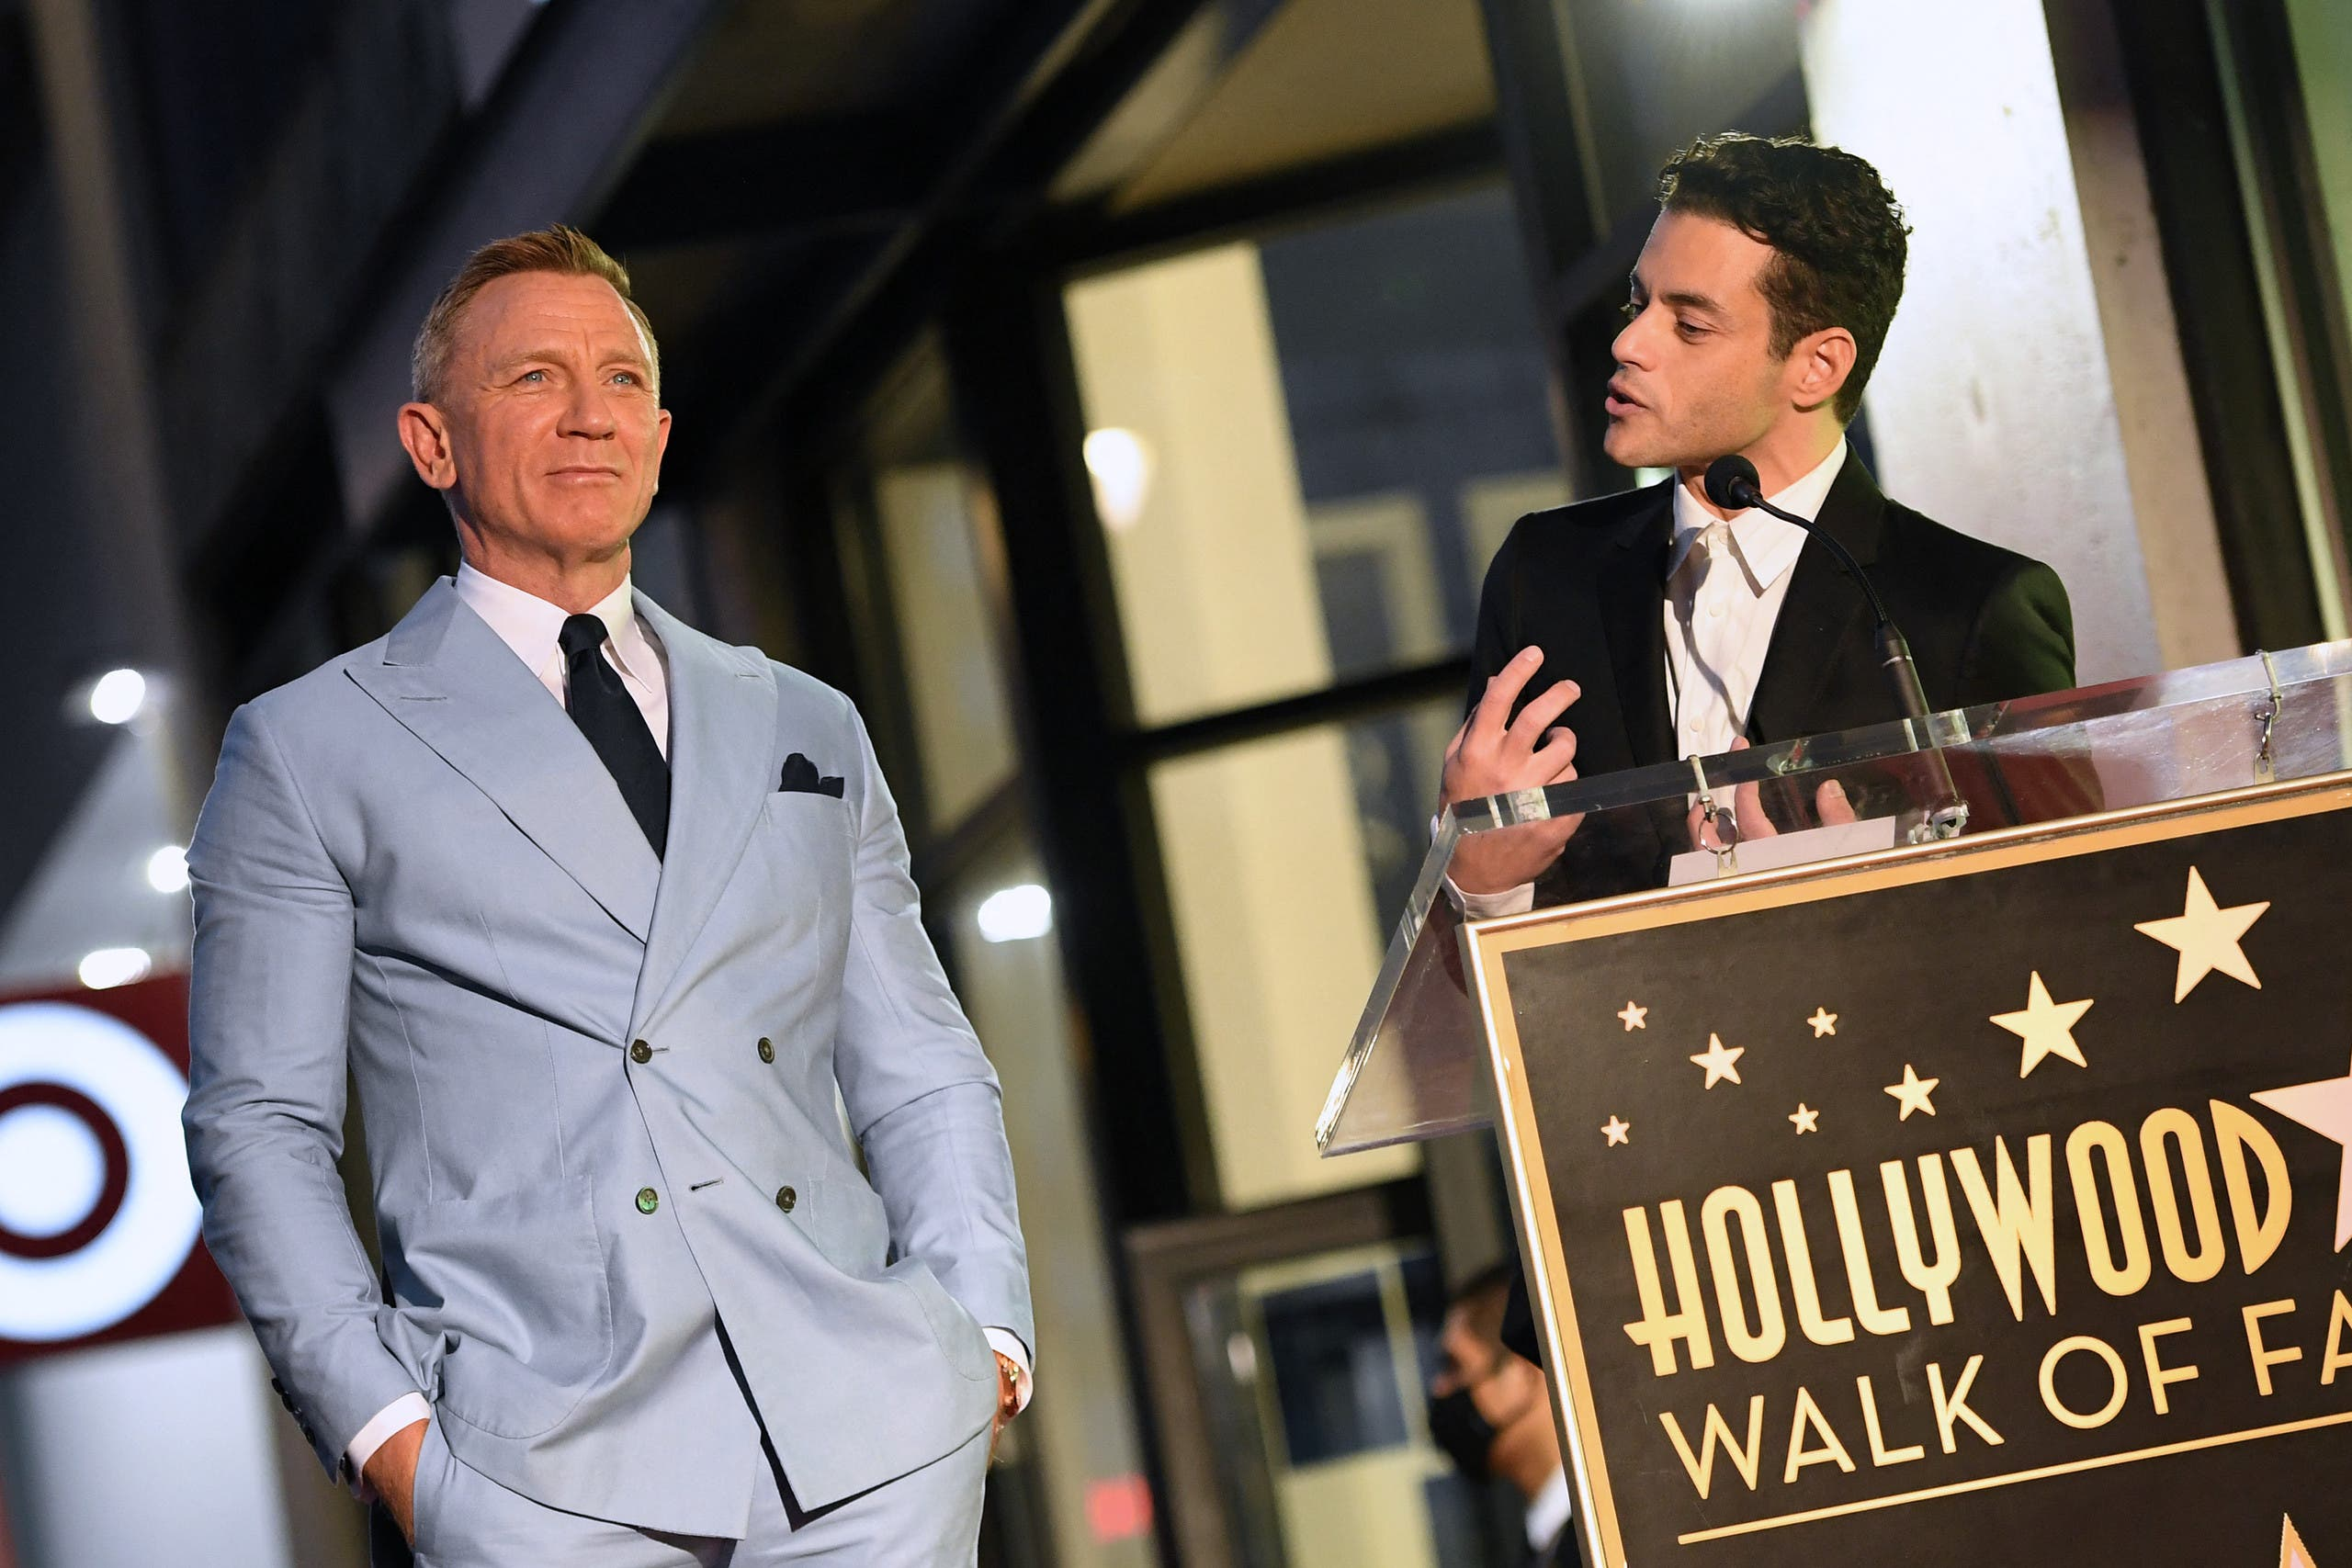 US actor Rami Malek (R) speaks during the ceremony to honor British actor Daniel Craig with a star on the Hollywood Walk of Fame in Los Angeles, California, on October 6, 2021. Craig's star will be located at 7007 Hollywood Boulevard, chosen for Craig's portrayal of James Bond in '007' films. (AFP)